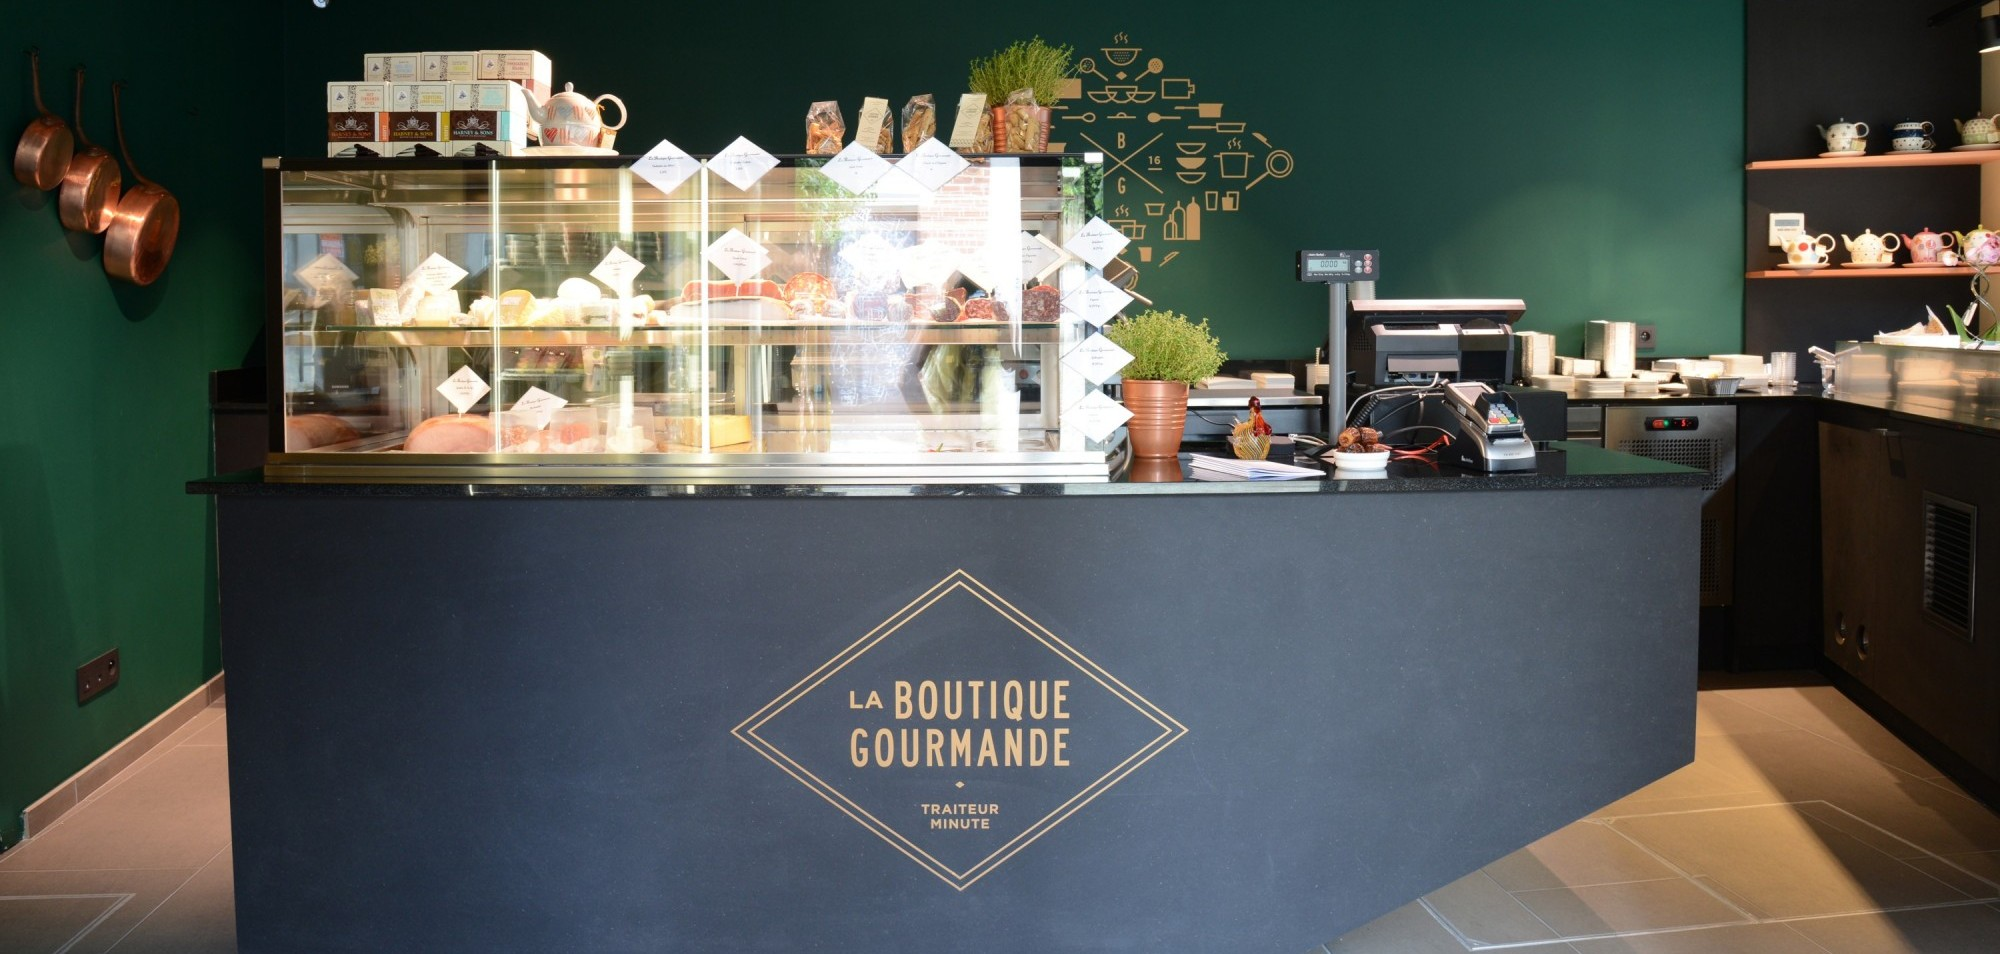 La Boutique Gourmande Huy